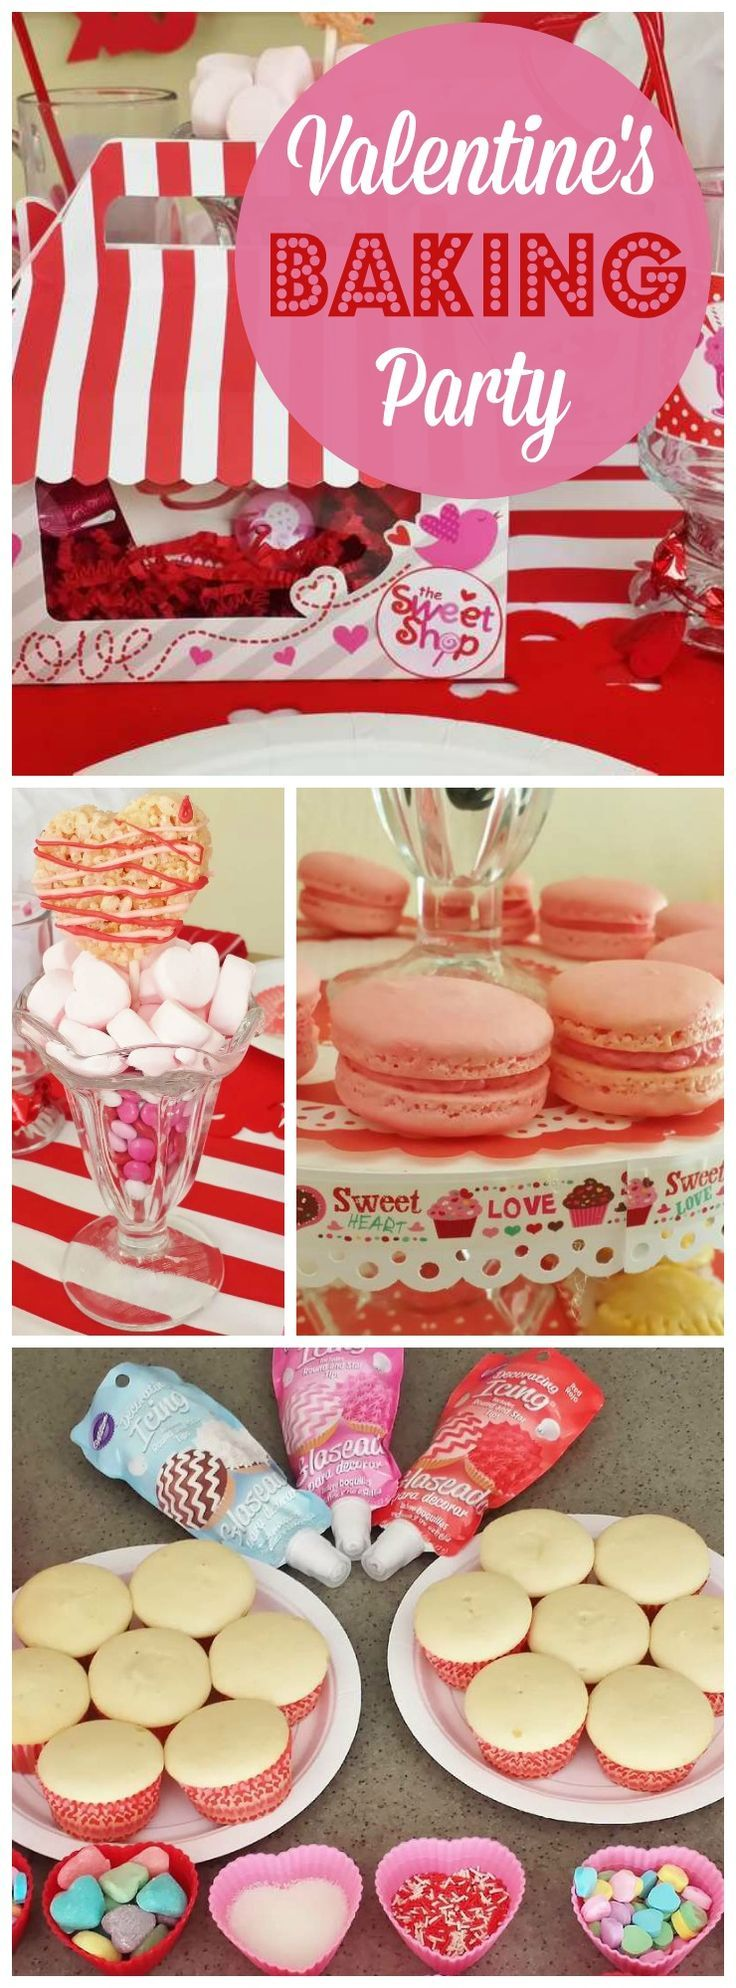 valentines day food ideas for a party - 736×1988